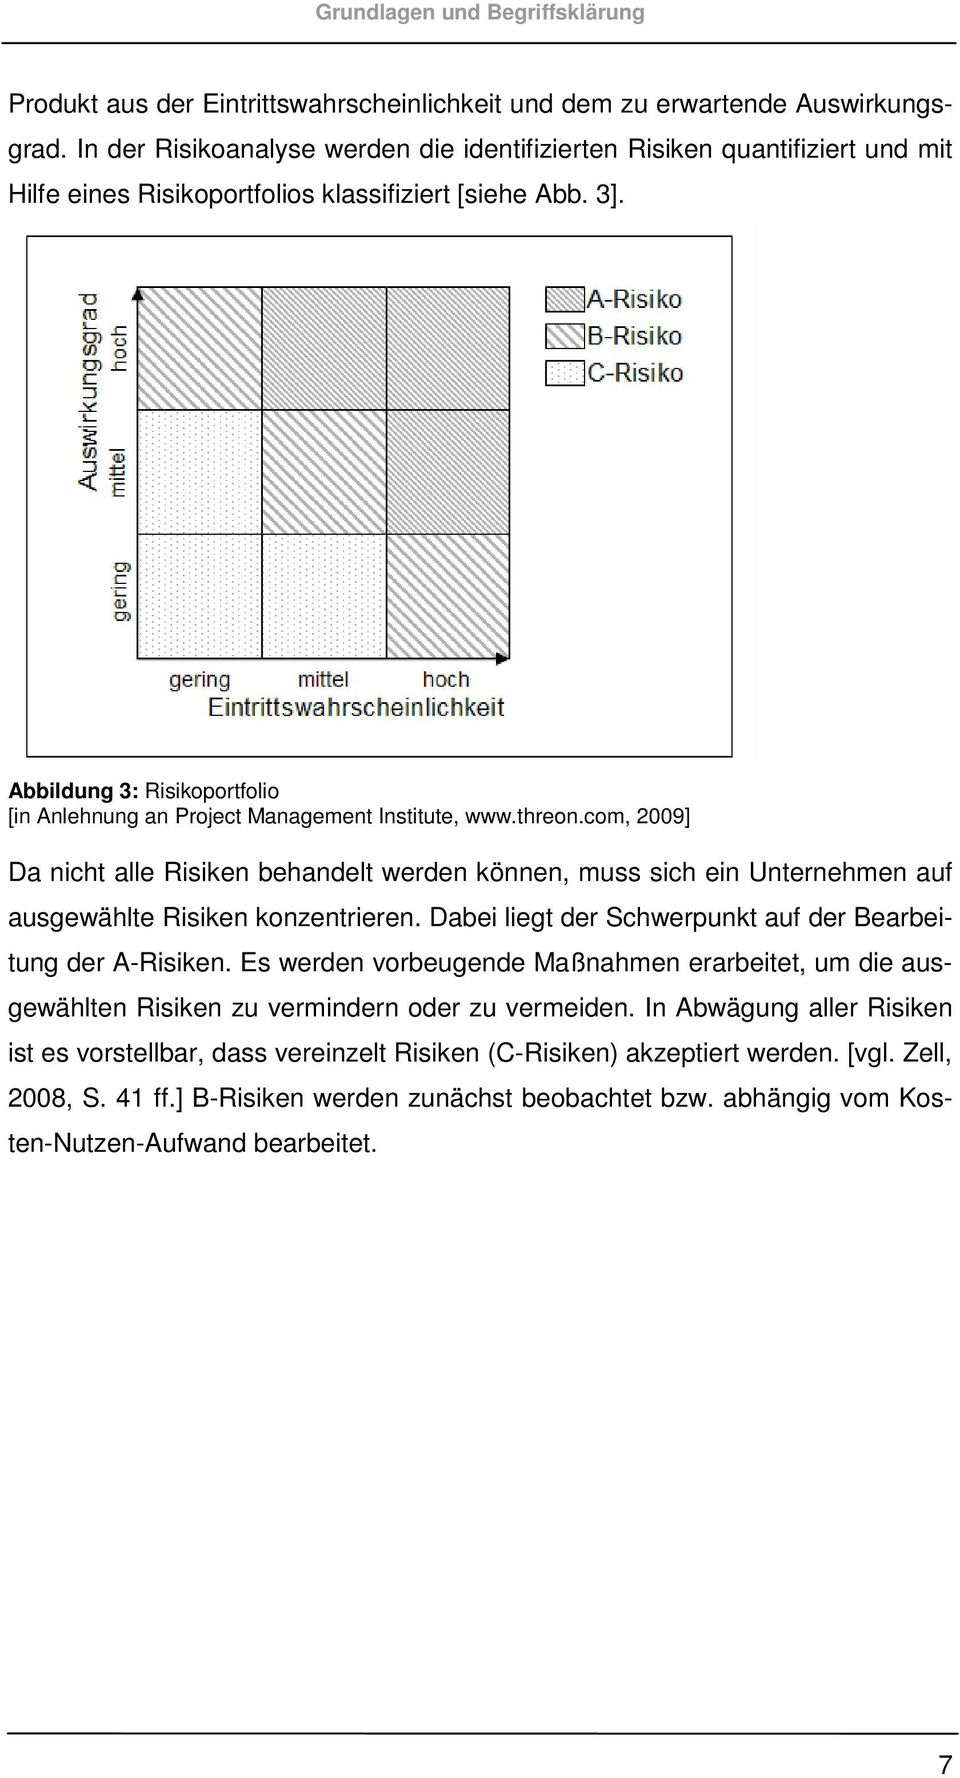 Abbildung 3: Risikoportfolio [in Anlehnung an Project Management Institute, www.threon.